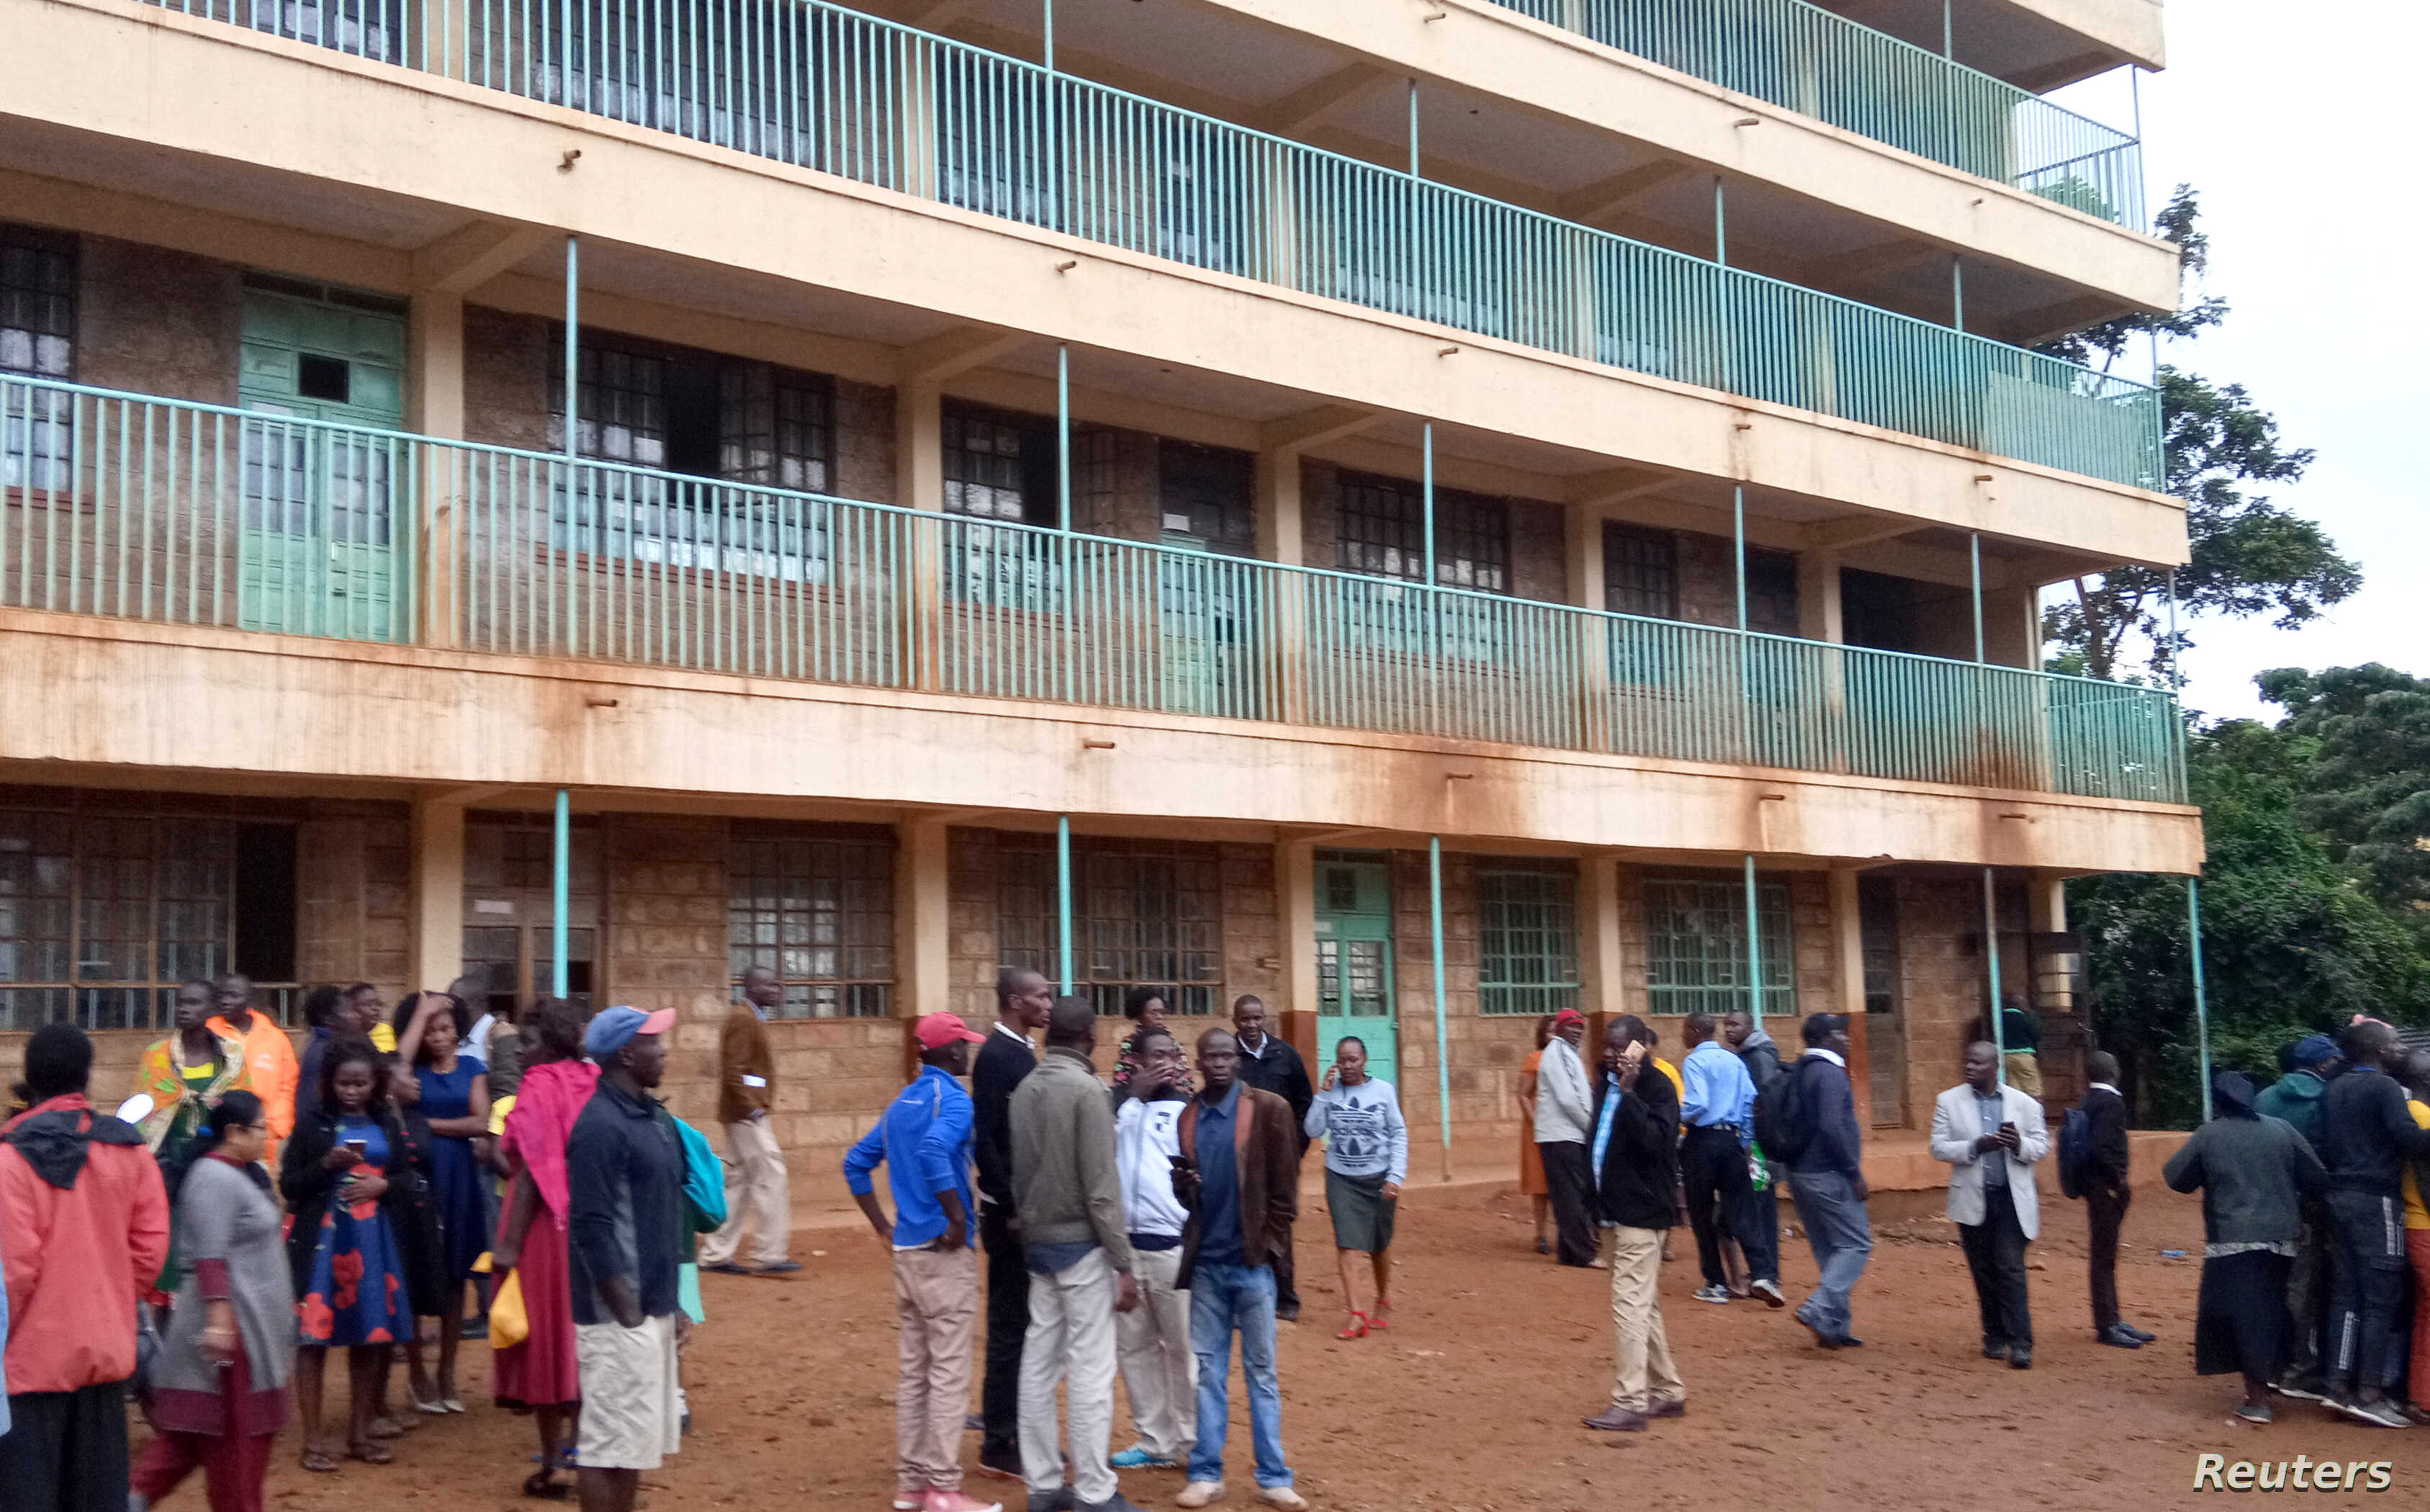 More than a dozen students killed in Kenya school stampede